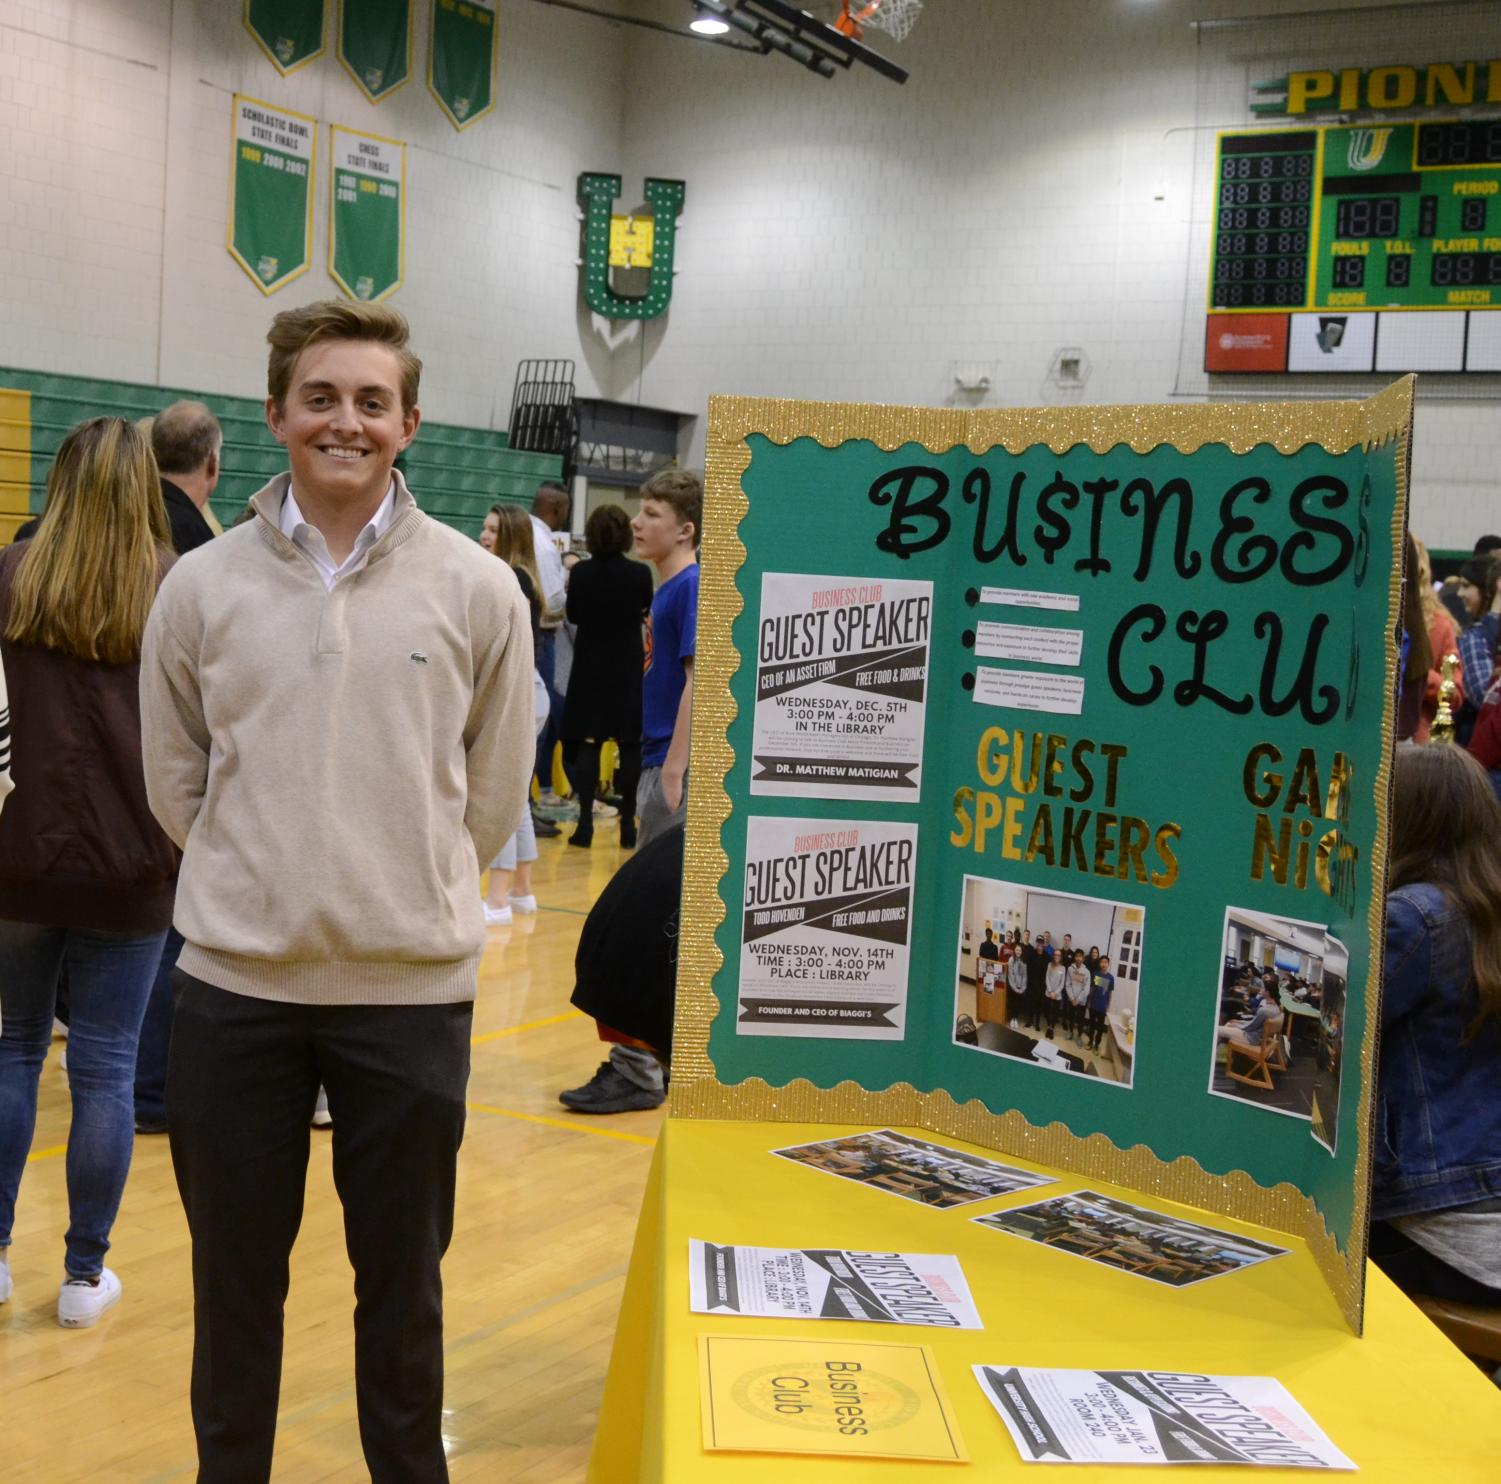 Joseph Newcomer showcases the Business Club at the Prospective Student Open House.